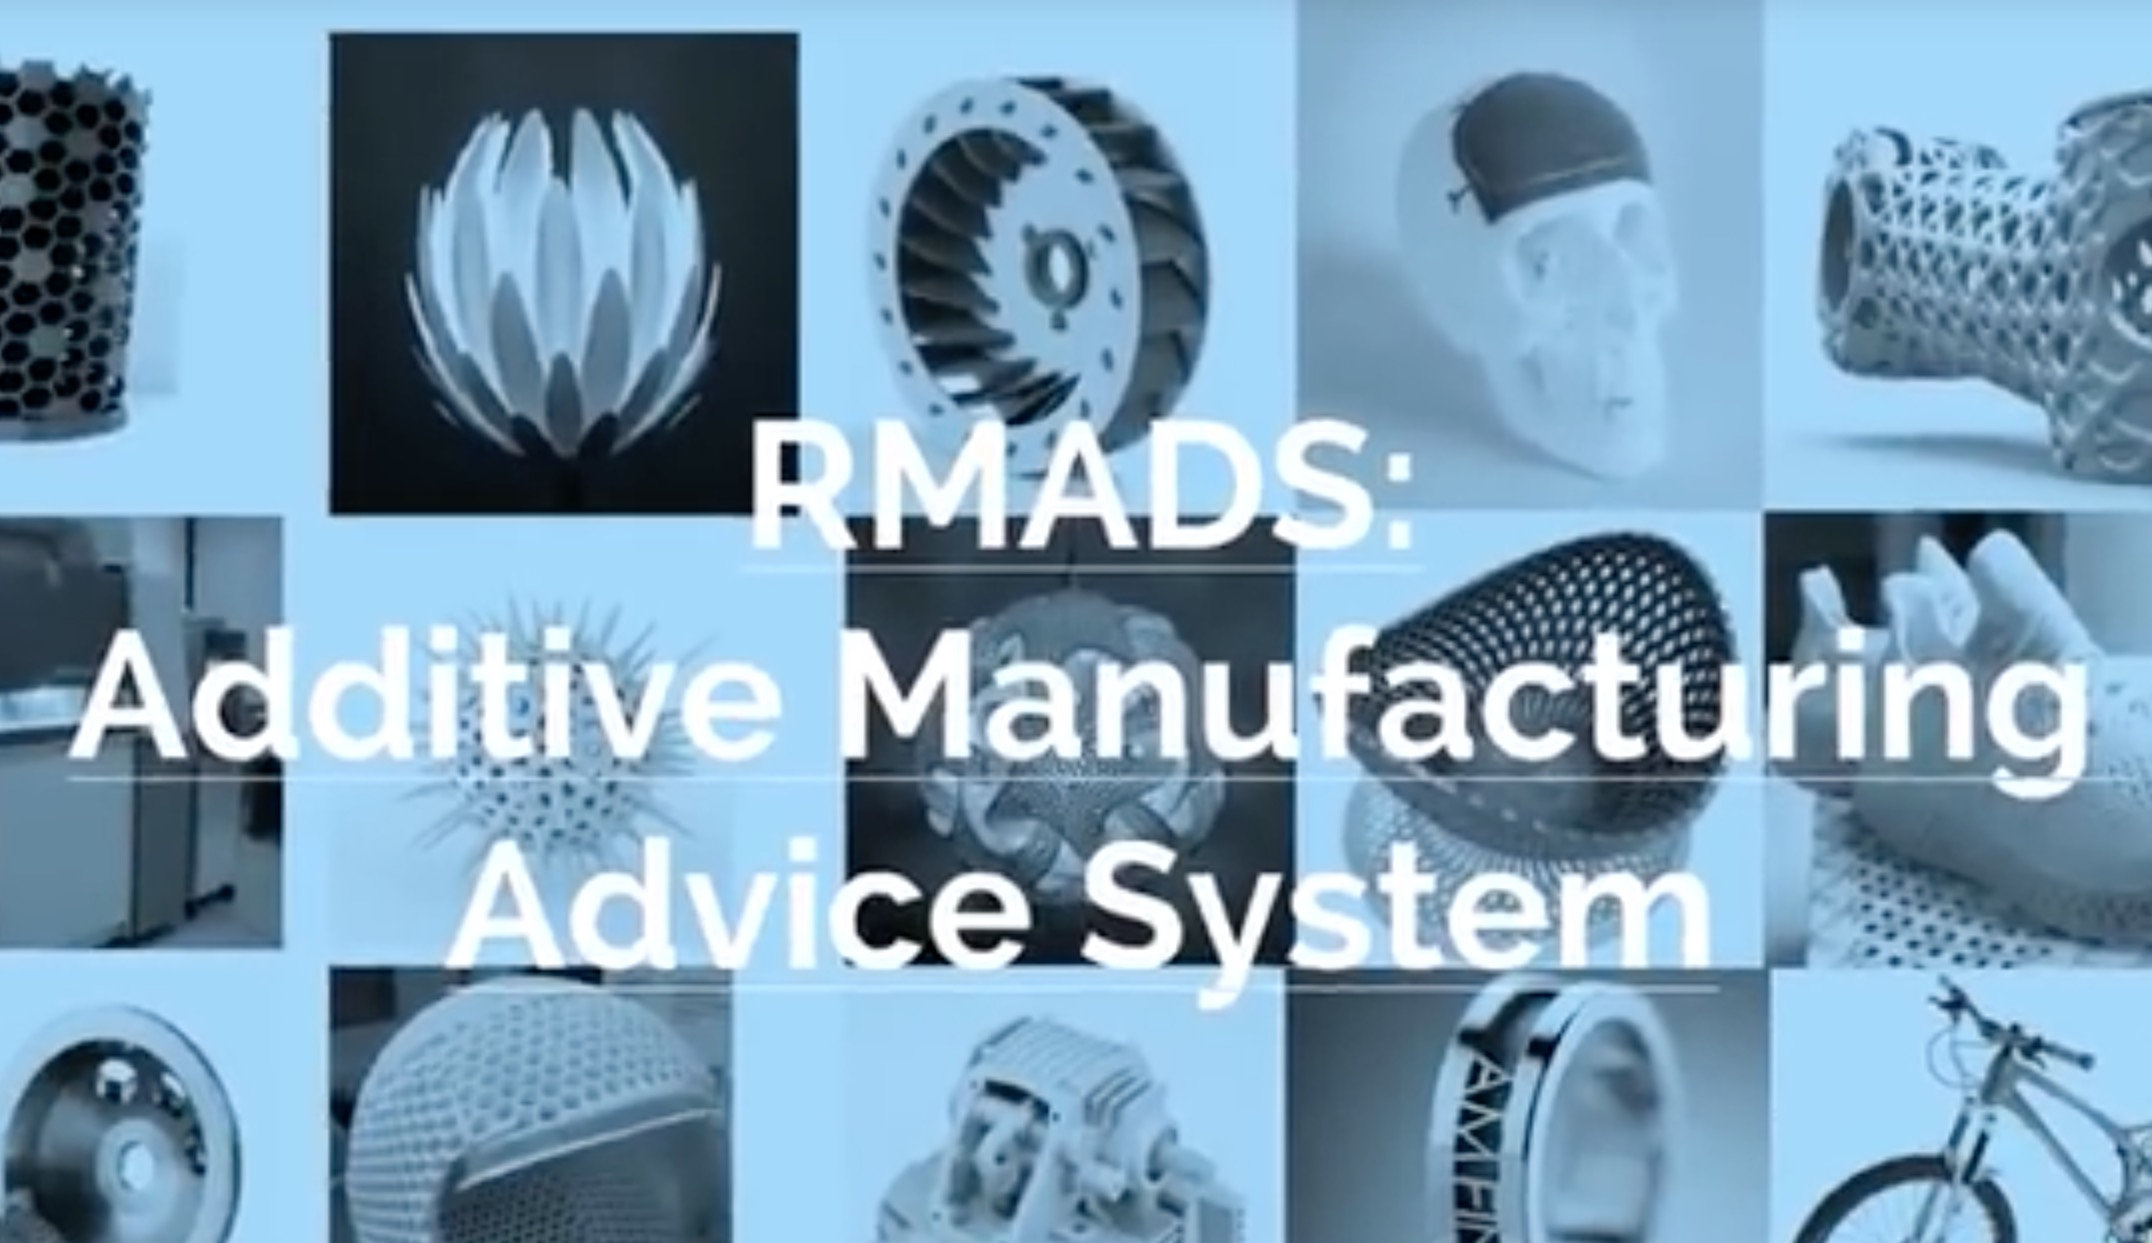 , 3D Print Community: The RMADS Rapid Manufacturing Advice System